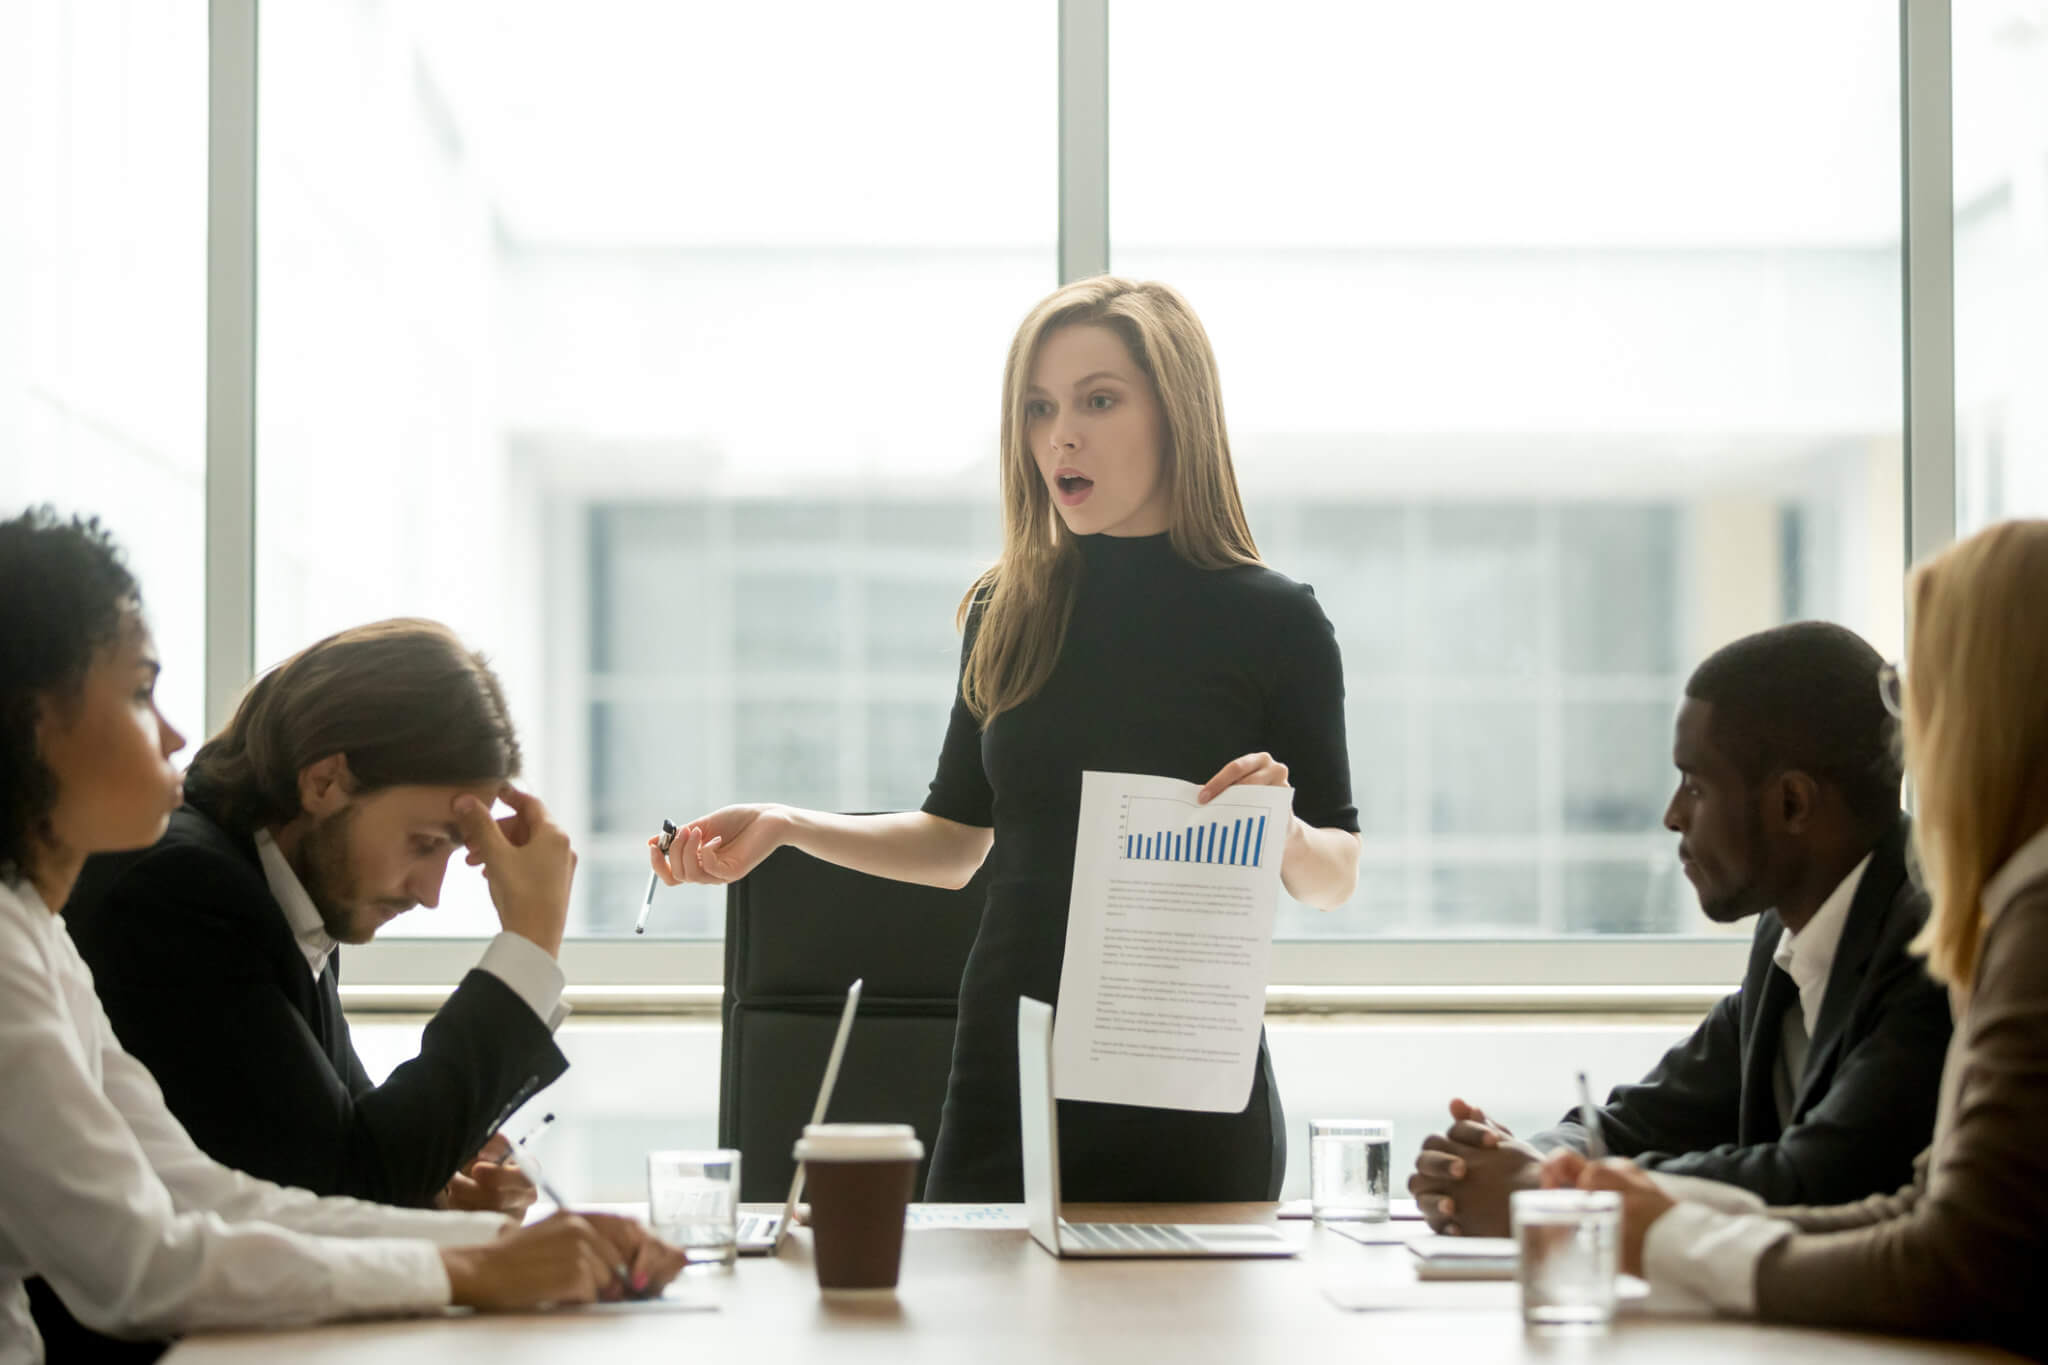 Angry female executive venting to employees in a meeting